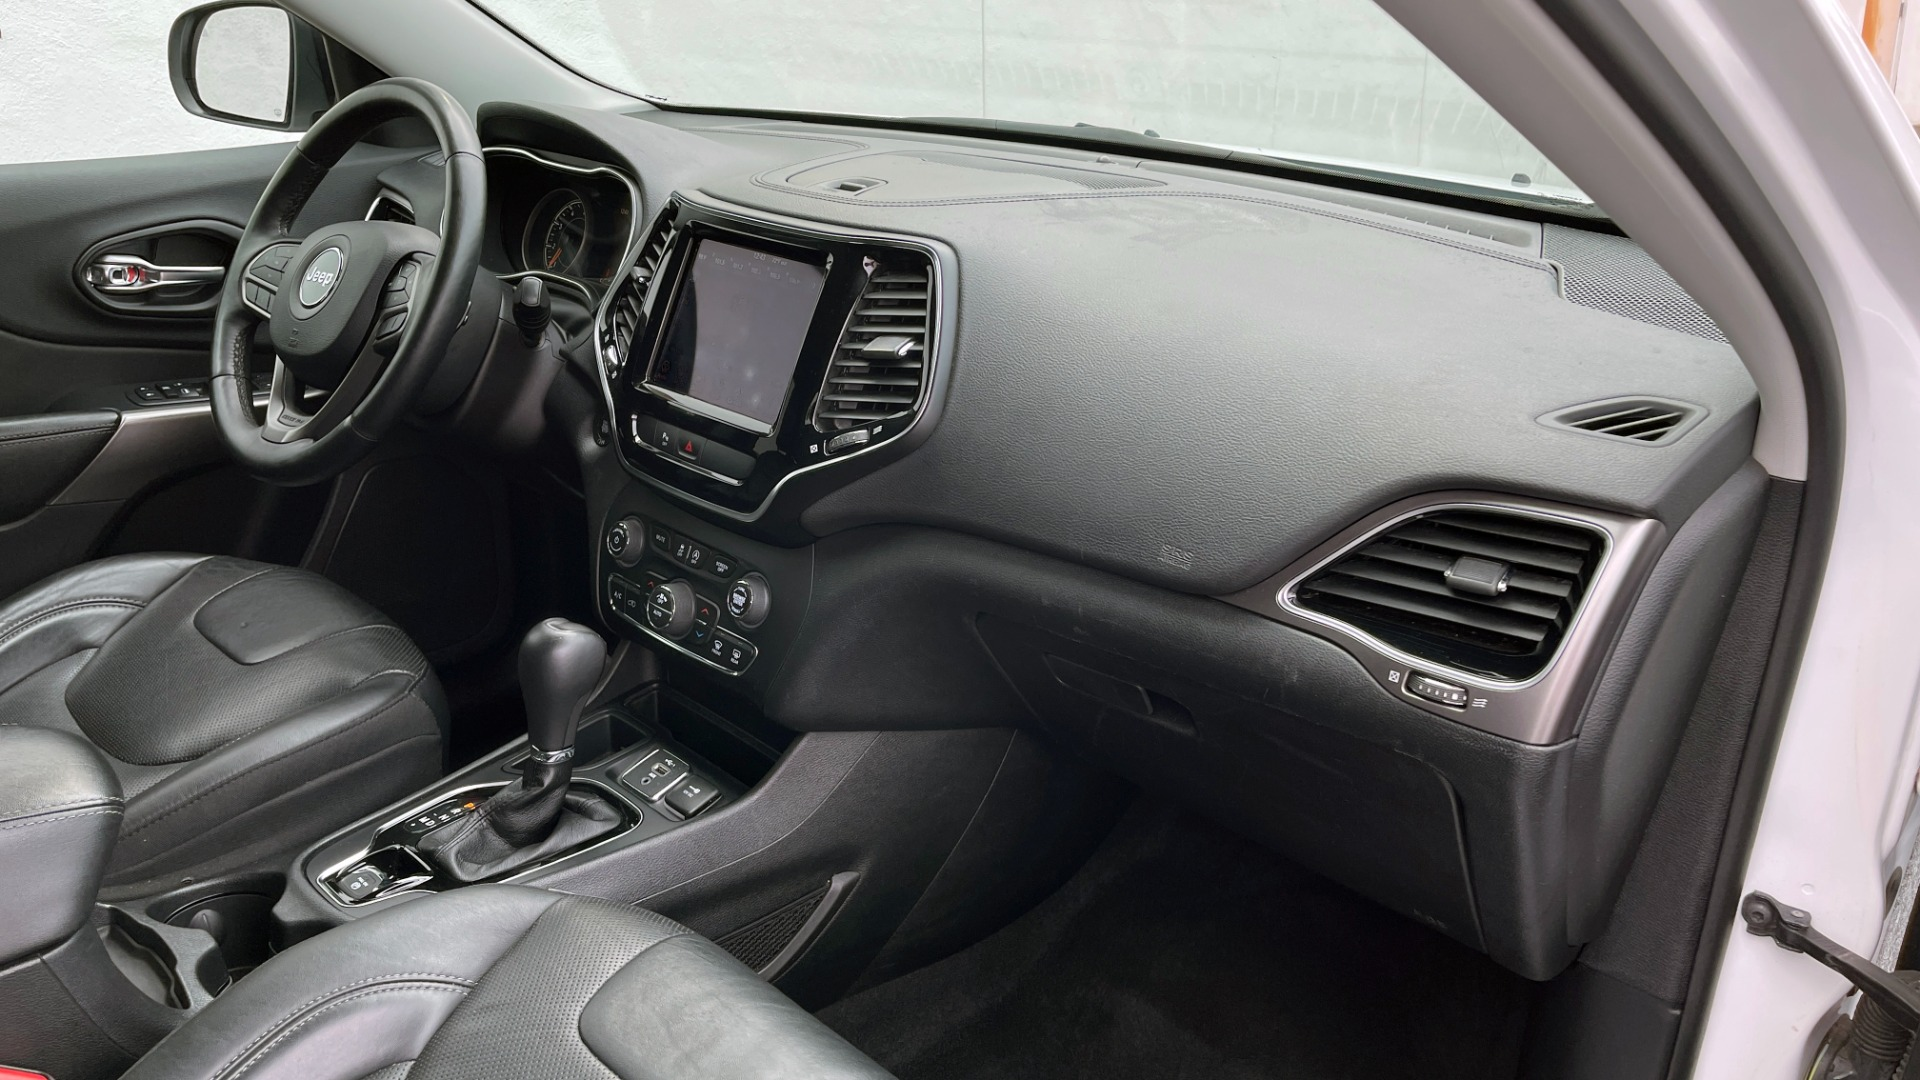 Used 2019 Jeep CHEROKEE LIMITED 2.4L / FWD / APPLE CARPLAY / KEYLESS-GO / REARVIEW for sale $24,395 at Formula Imports in Charlotte NC 28227 60